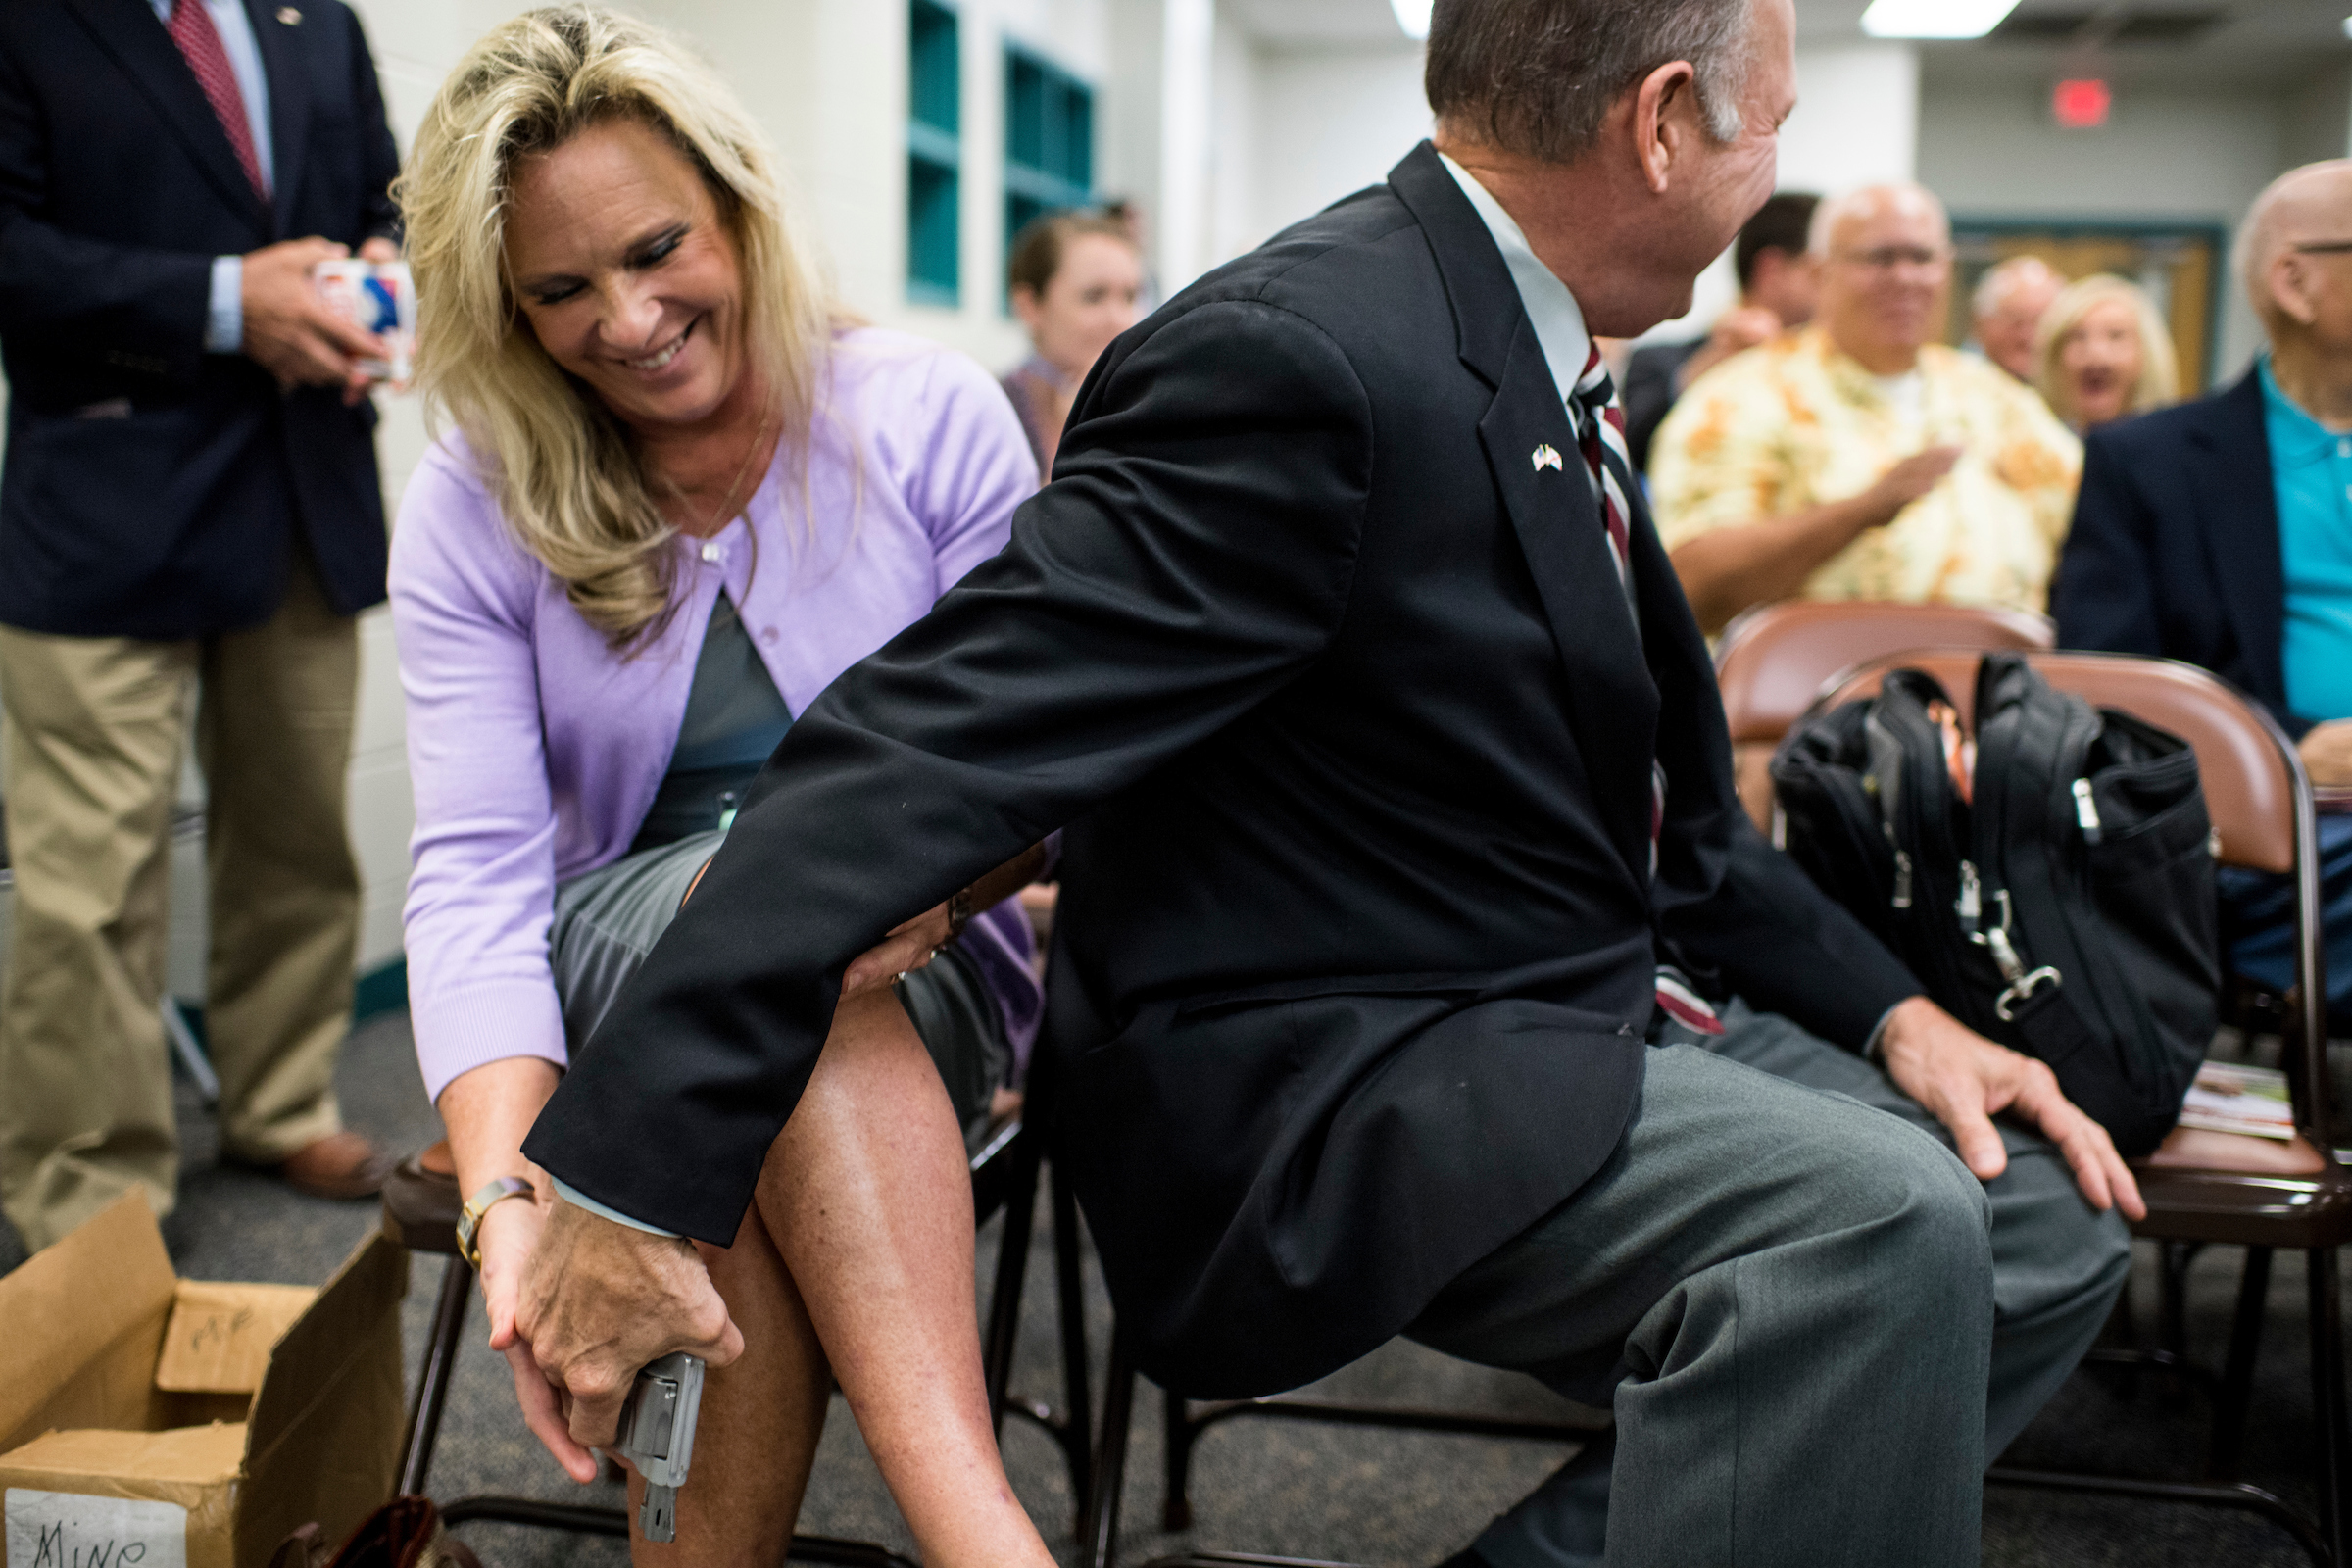 GOP candidate for U.S. Senate Roy Moore displays his wife's hand gun as a way to show support for the 2nd amendment after candidates were asked about their views on gun rights during a candidates' forum in Valley, Ala., on Thursday, Aug. 3, 2017. The former Chief Justice of the Alabama Supreme Court is running tin the special election to fill the seat vacated by Attorney General Jeff Sessions. (Photo By Bill Clark/CQ Roll Call)